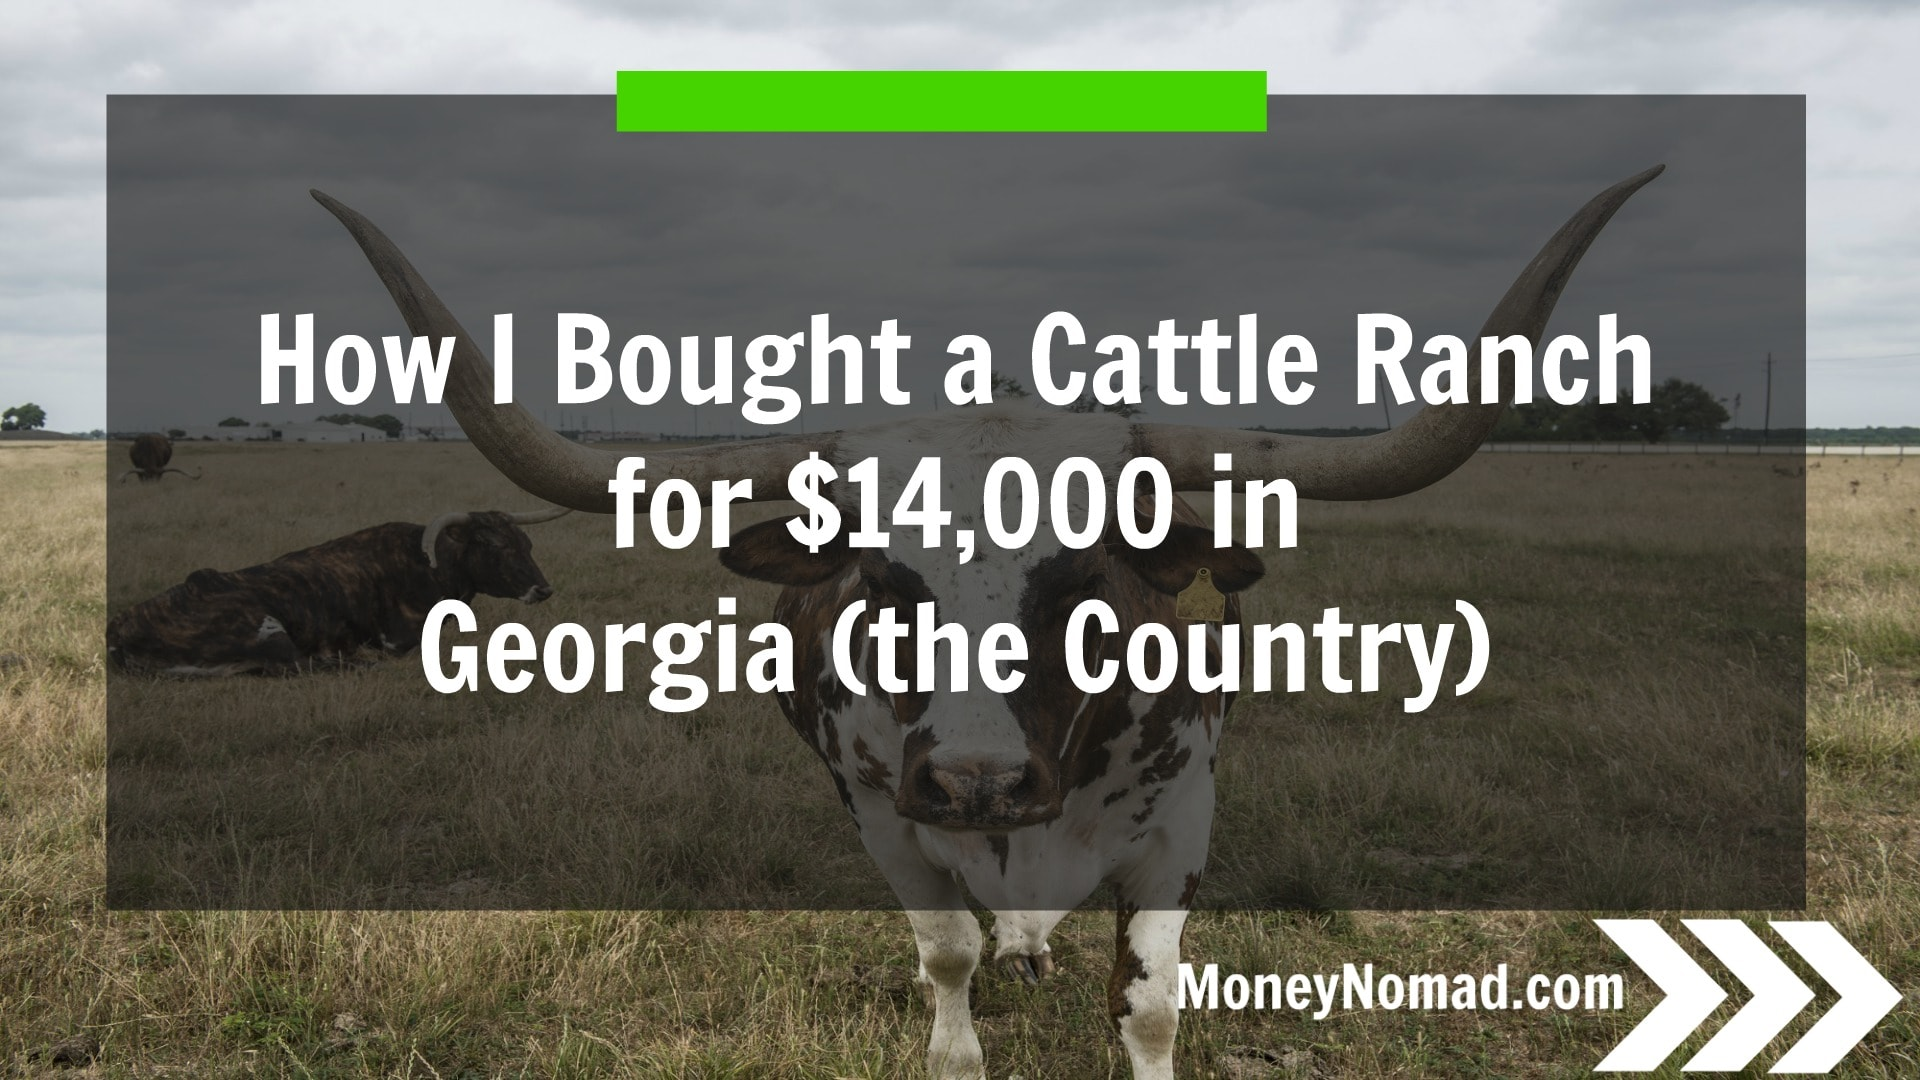 How I Bought A 98 Acre Cattle Ranch For $14,000 In Georgia (the Country)